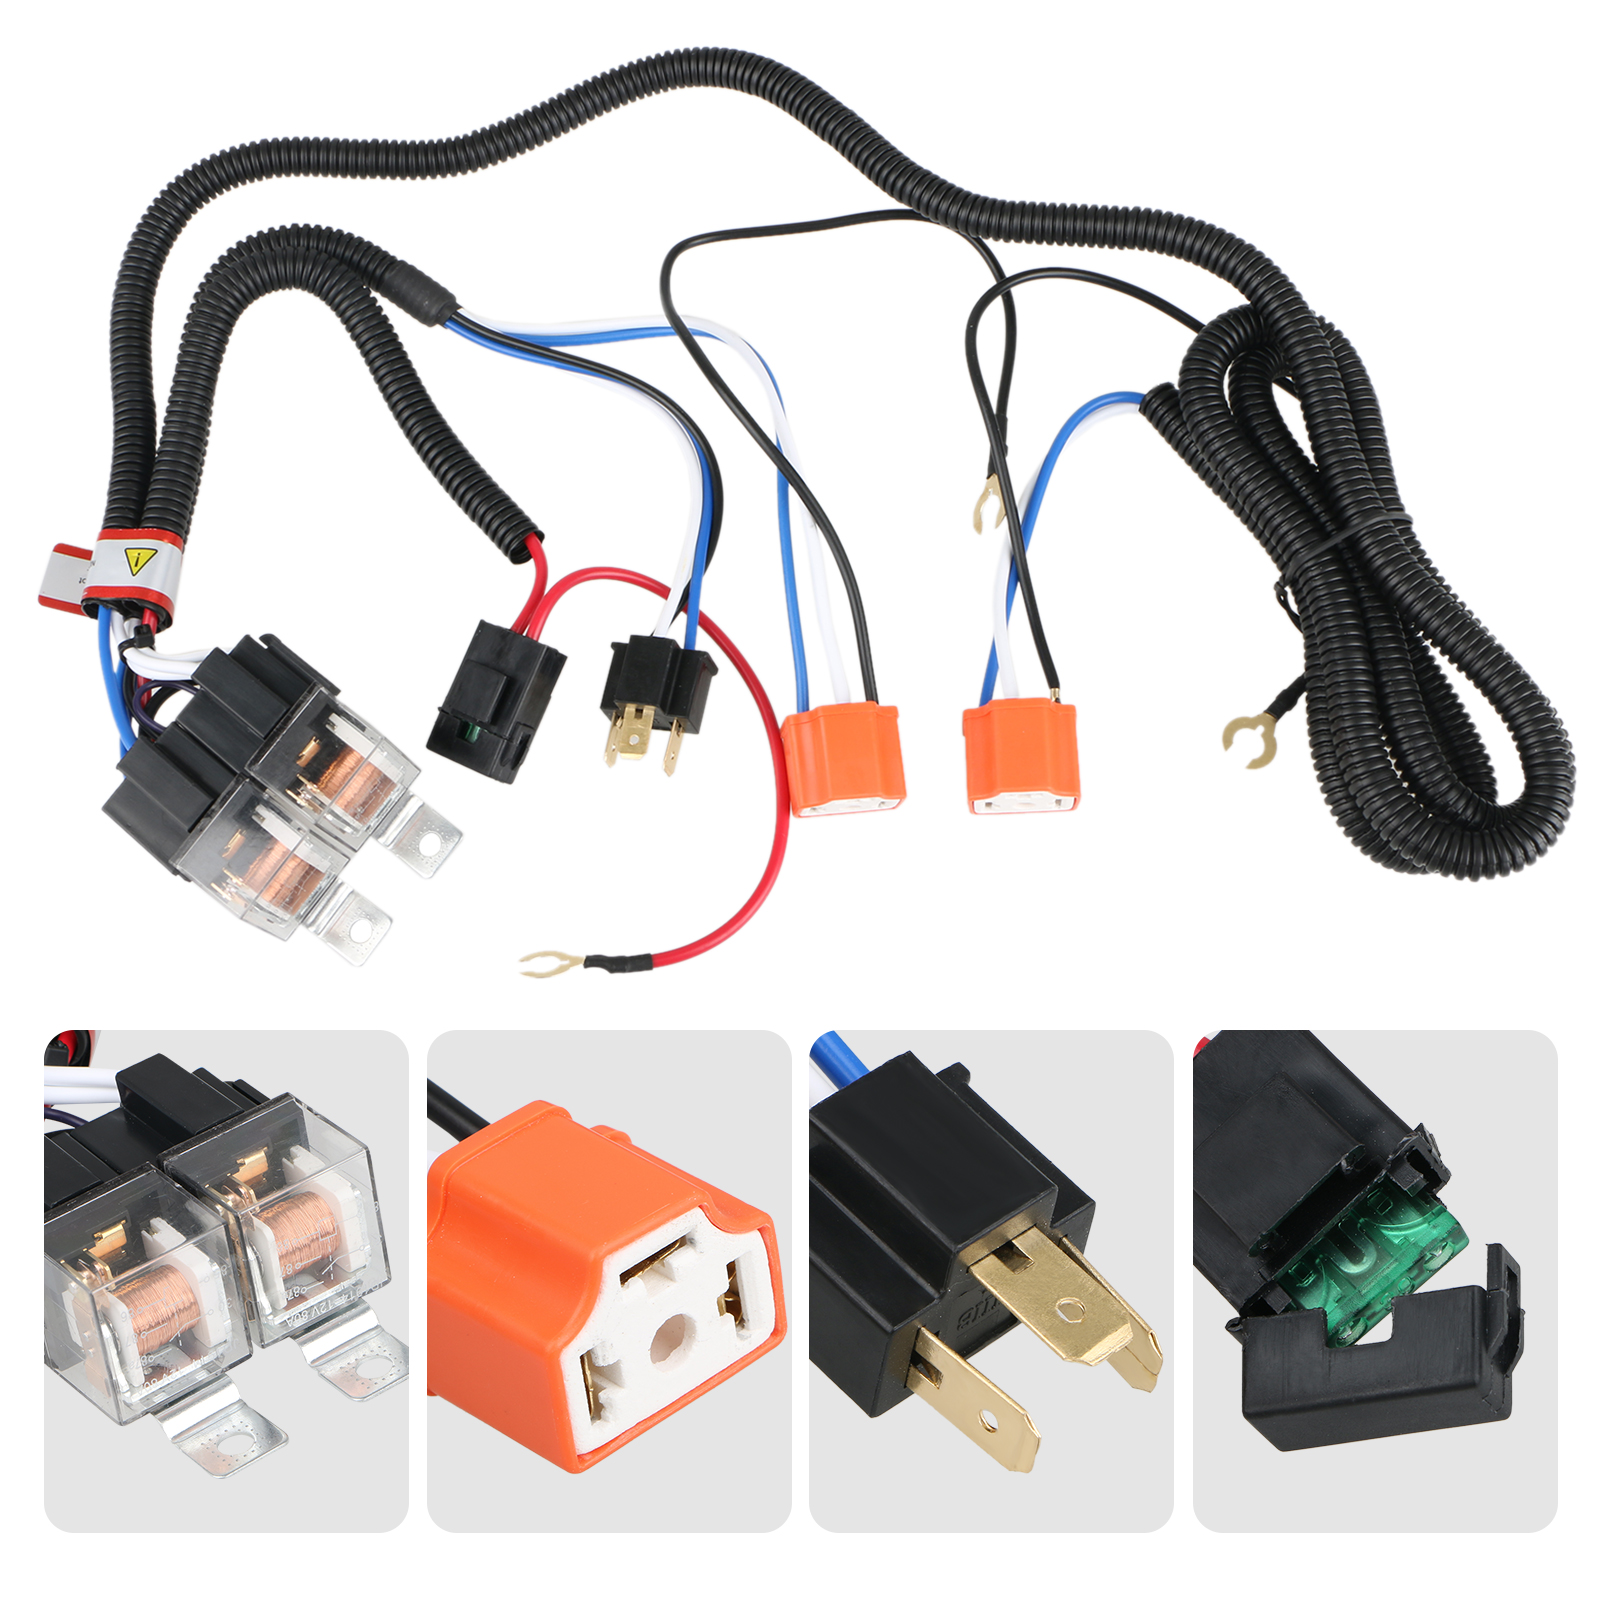 tsv 1set 2 headlight harness h4 headlight relay harness h6054 h4 9003 bulb wiring h4 headlight relay wiring harness [ 1600 x 1600 Pixel ]